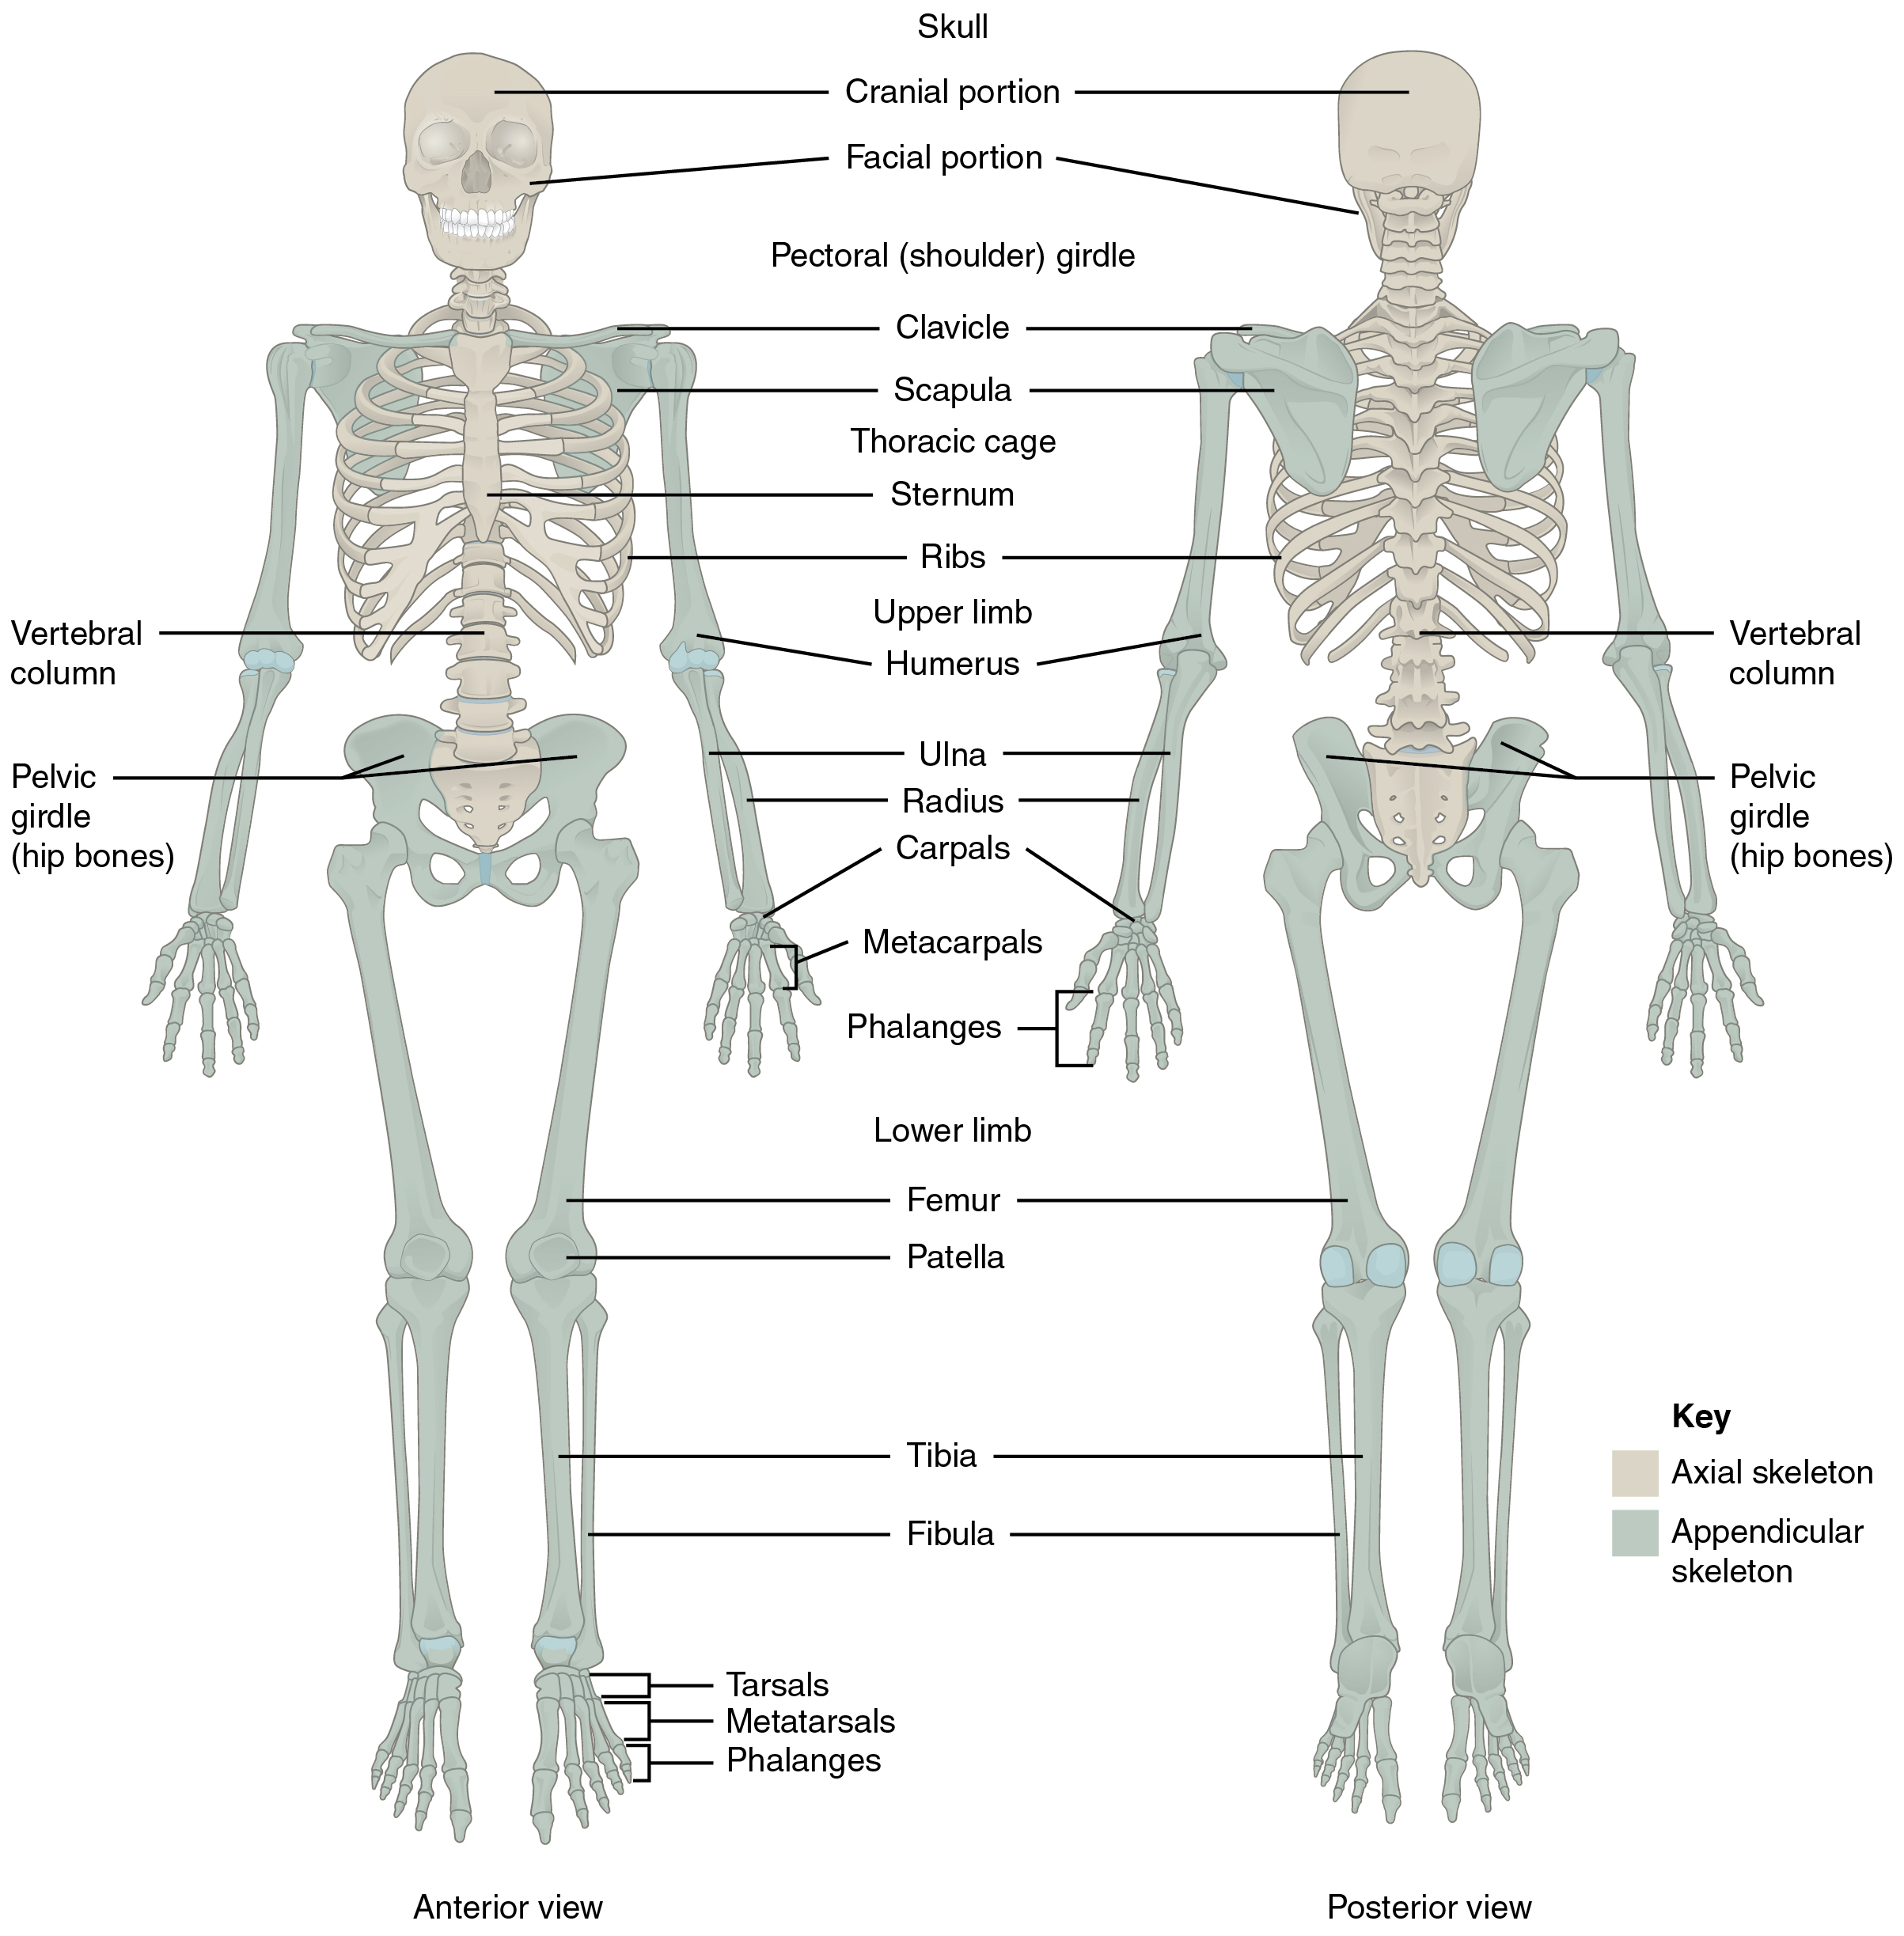 Divisions Of The Skeletal System Anatomy Physiology Openstax Cnx